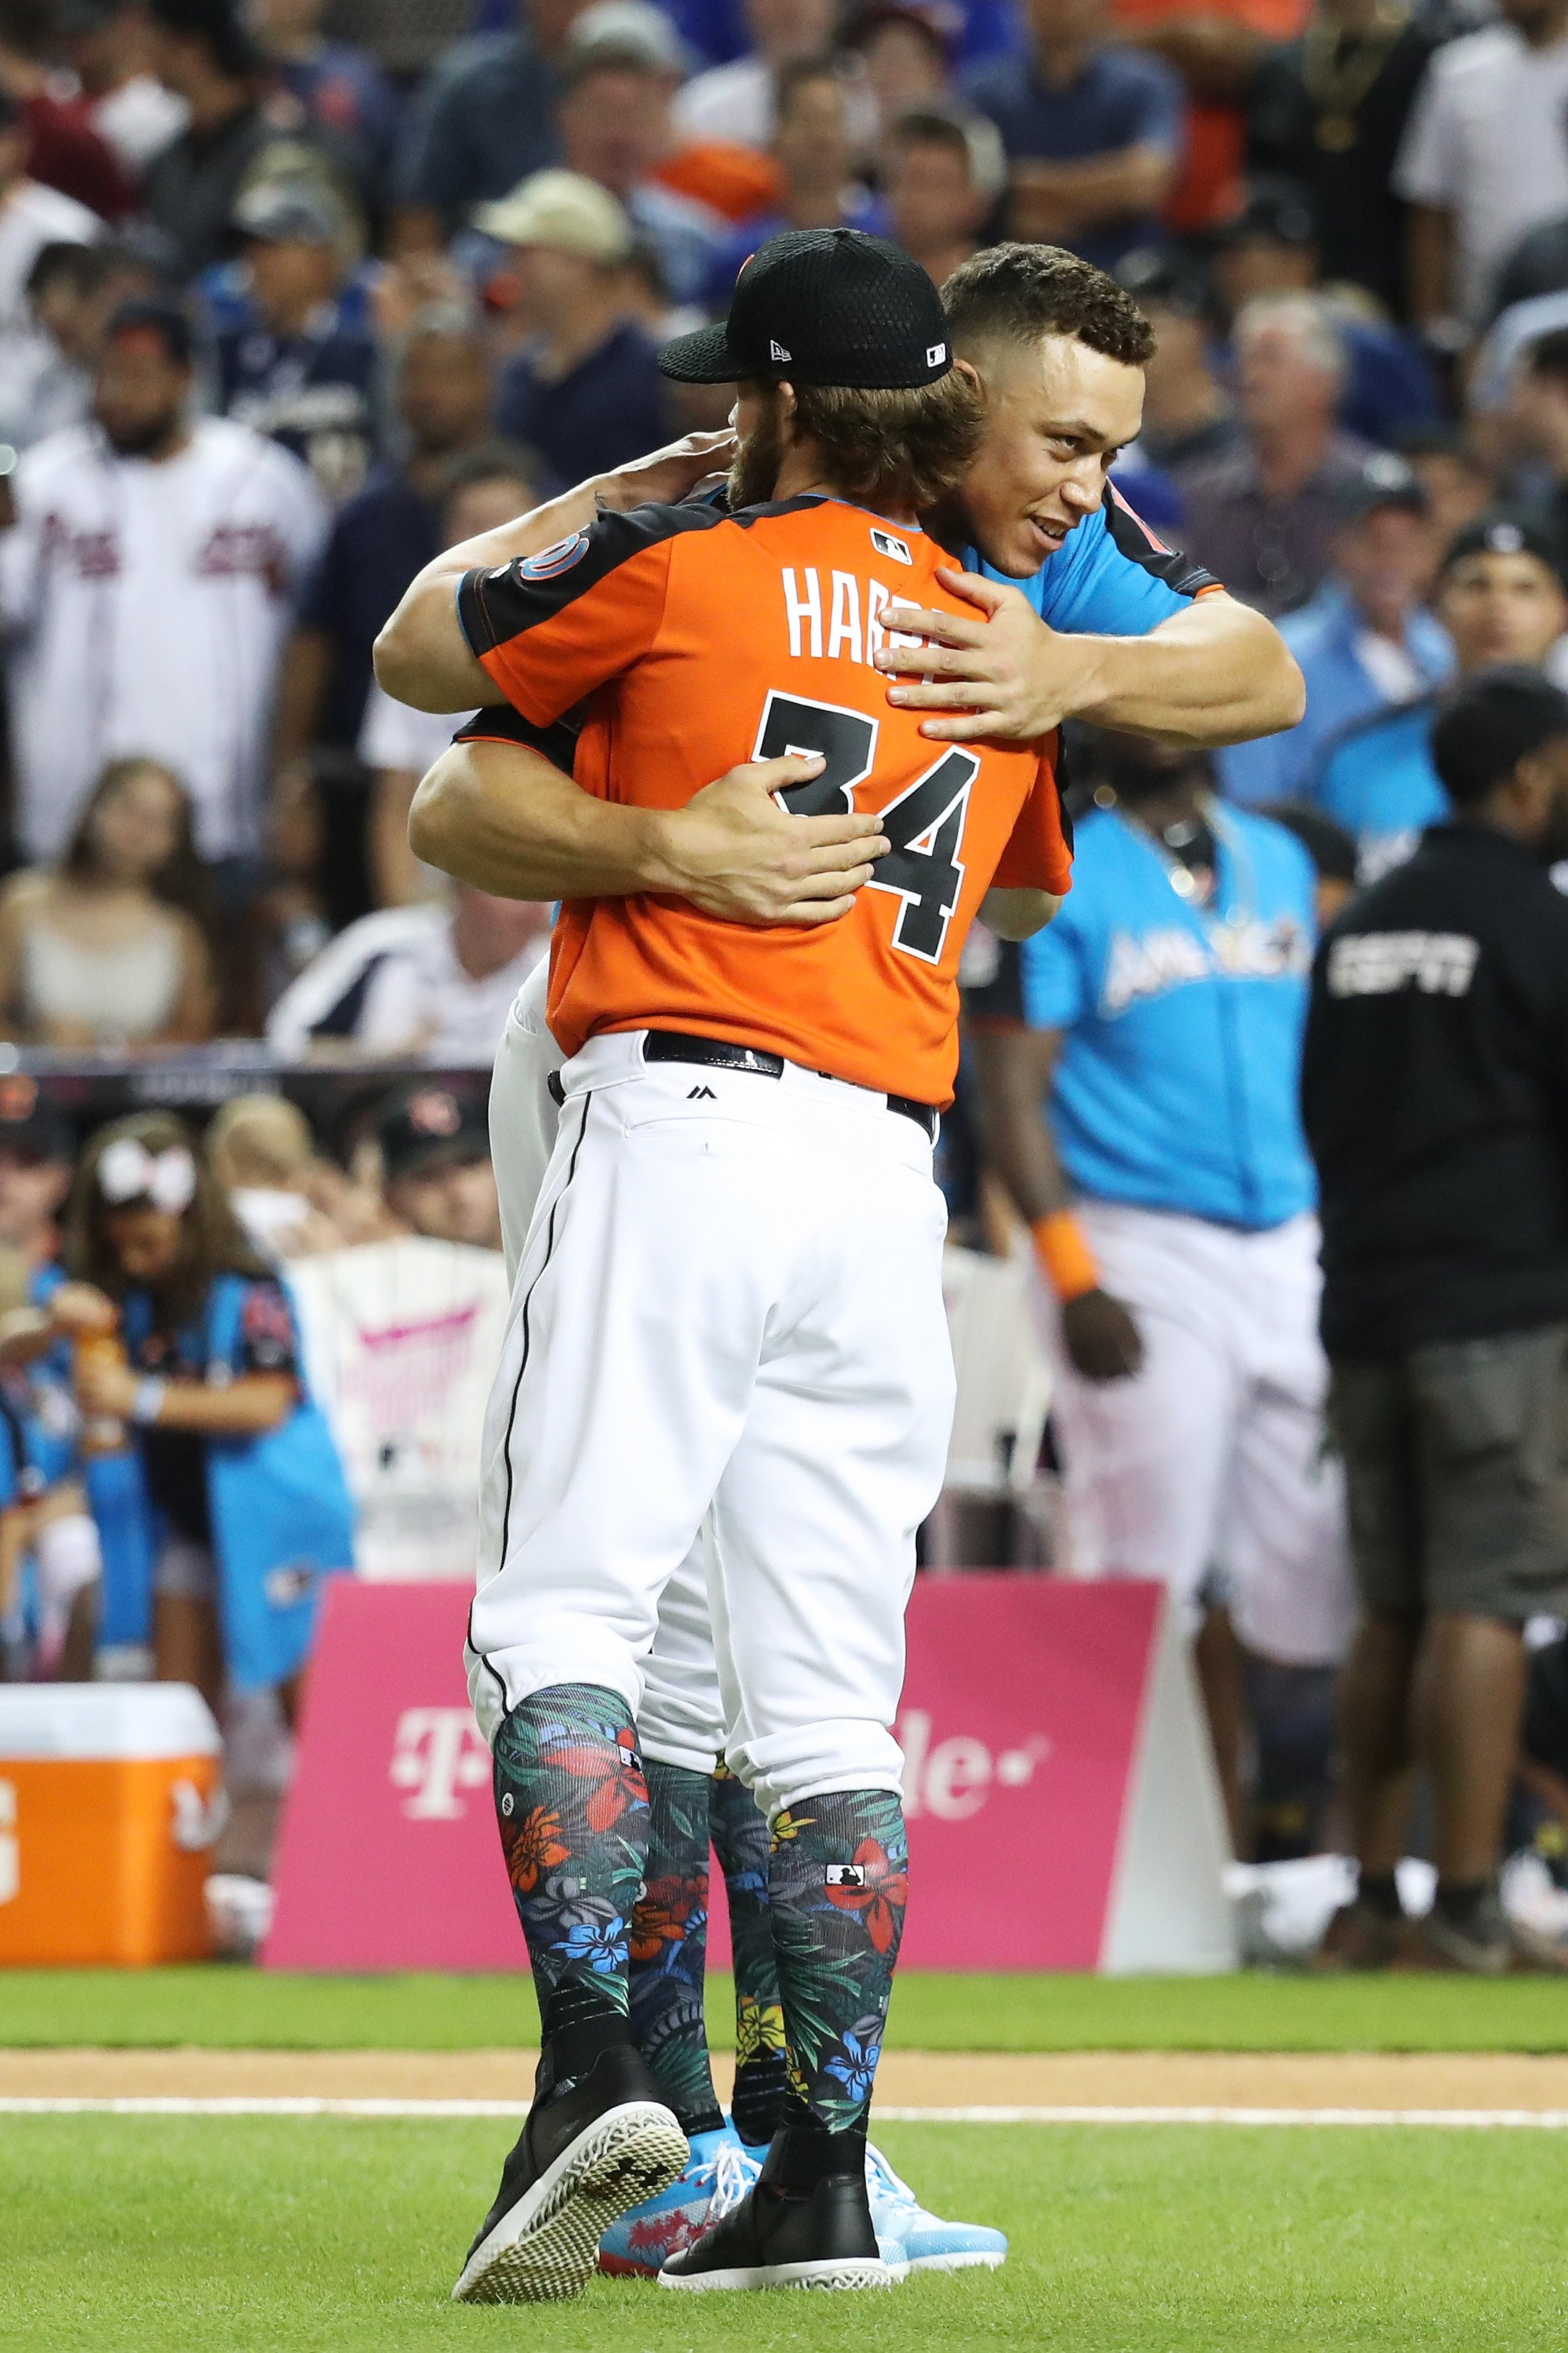 MIAMI, FL - JULY 10: Aaron Judge #99 of the New York Yankees hugs Bryce Harper #34 of the Washington Nationals and the National League in the T-Mobile Home Run Derby at Marlins Park on July 10, 2017 in Miami, Florida. (Photo by Rob Carr/Getty Images)